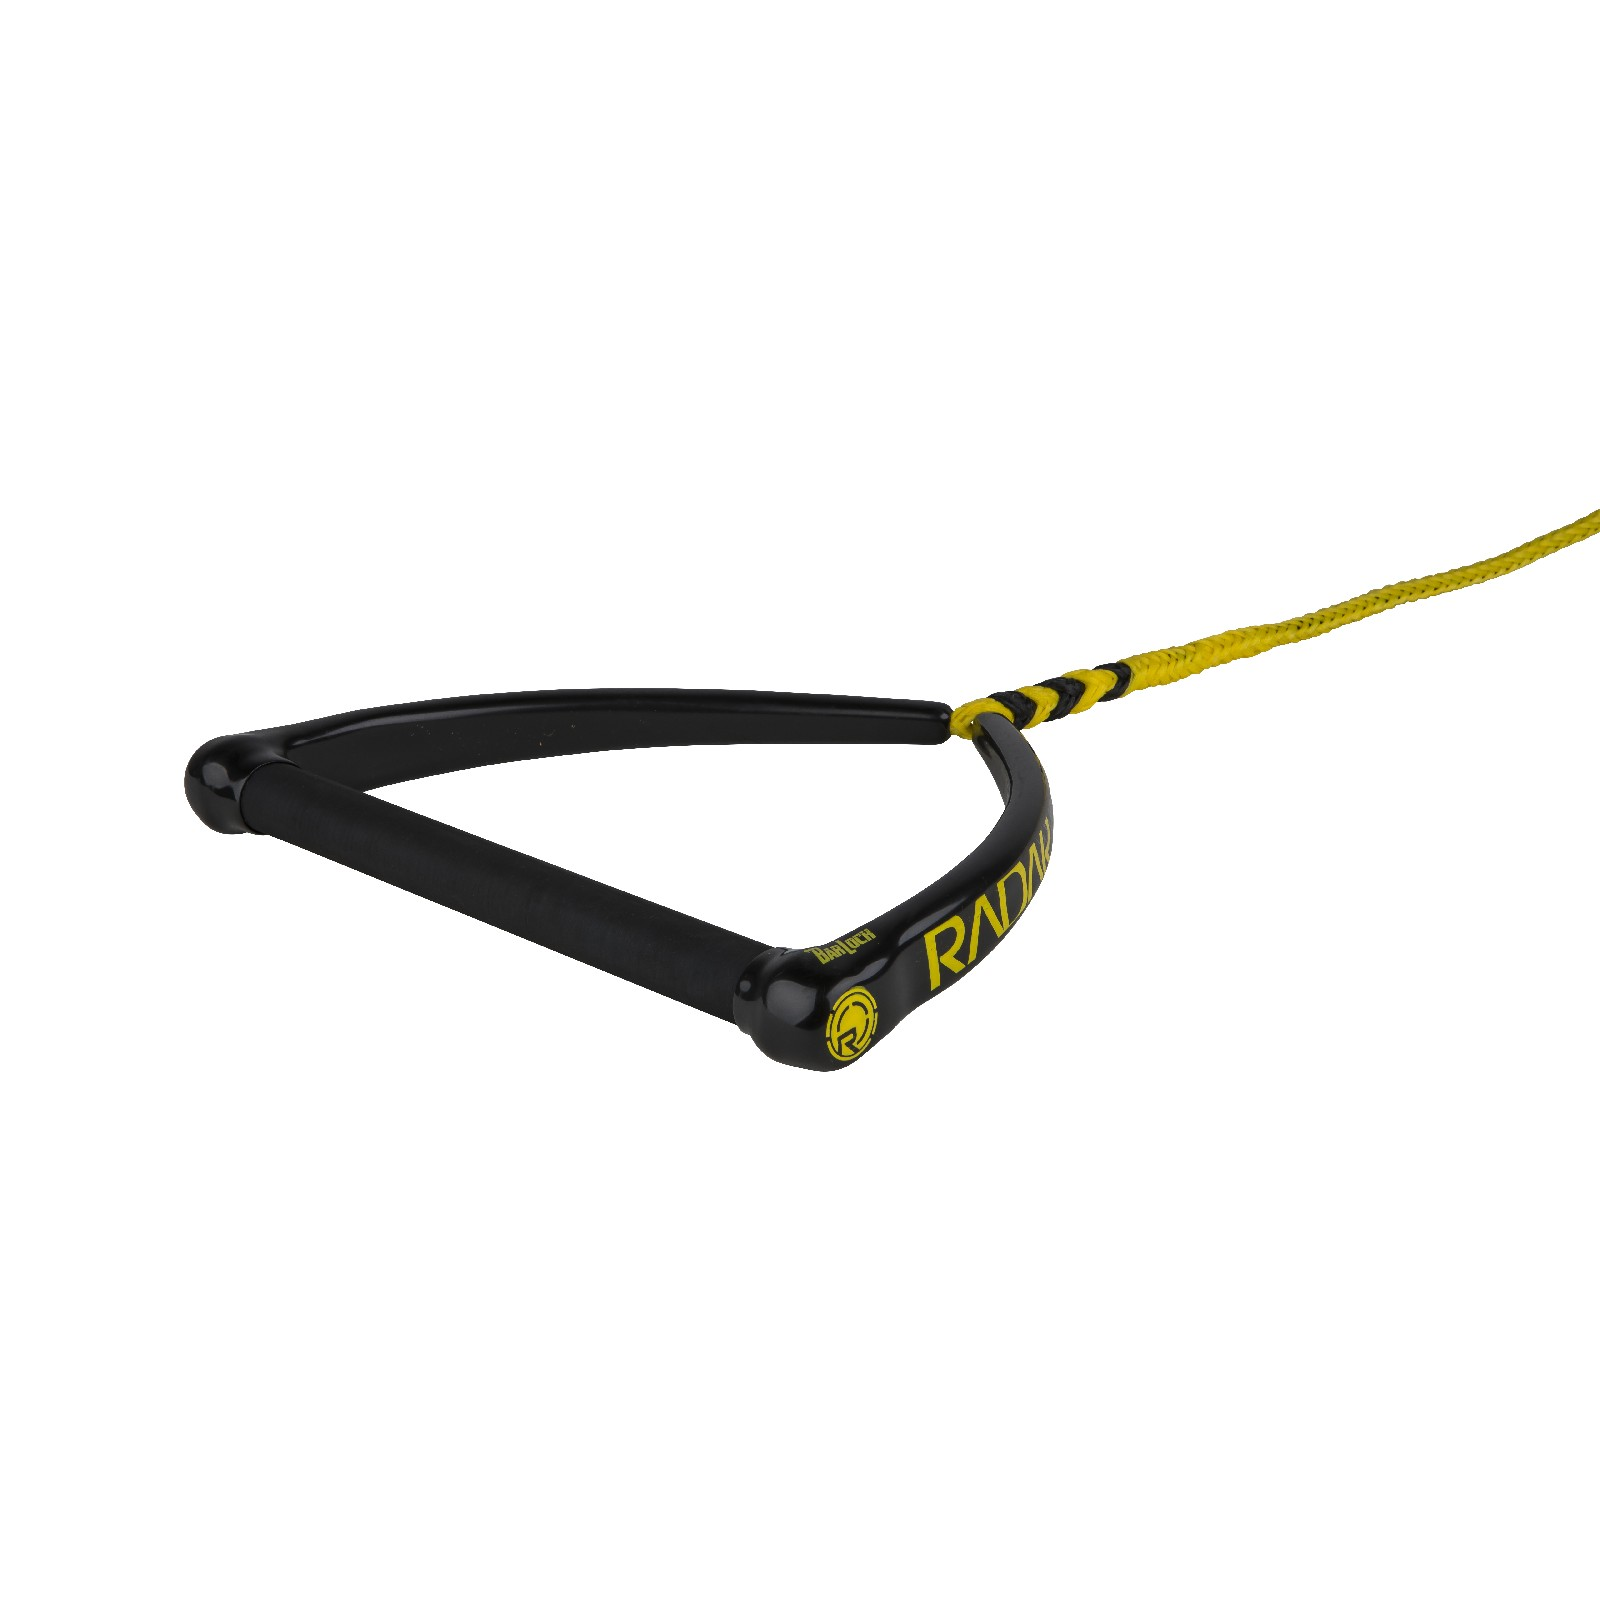 CONTROL - BAR LOCK 13'' ELLIPTICAL HANDLE - YELLOW RADAR 2019